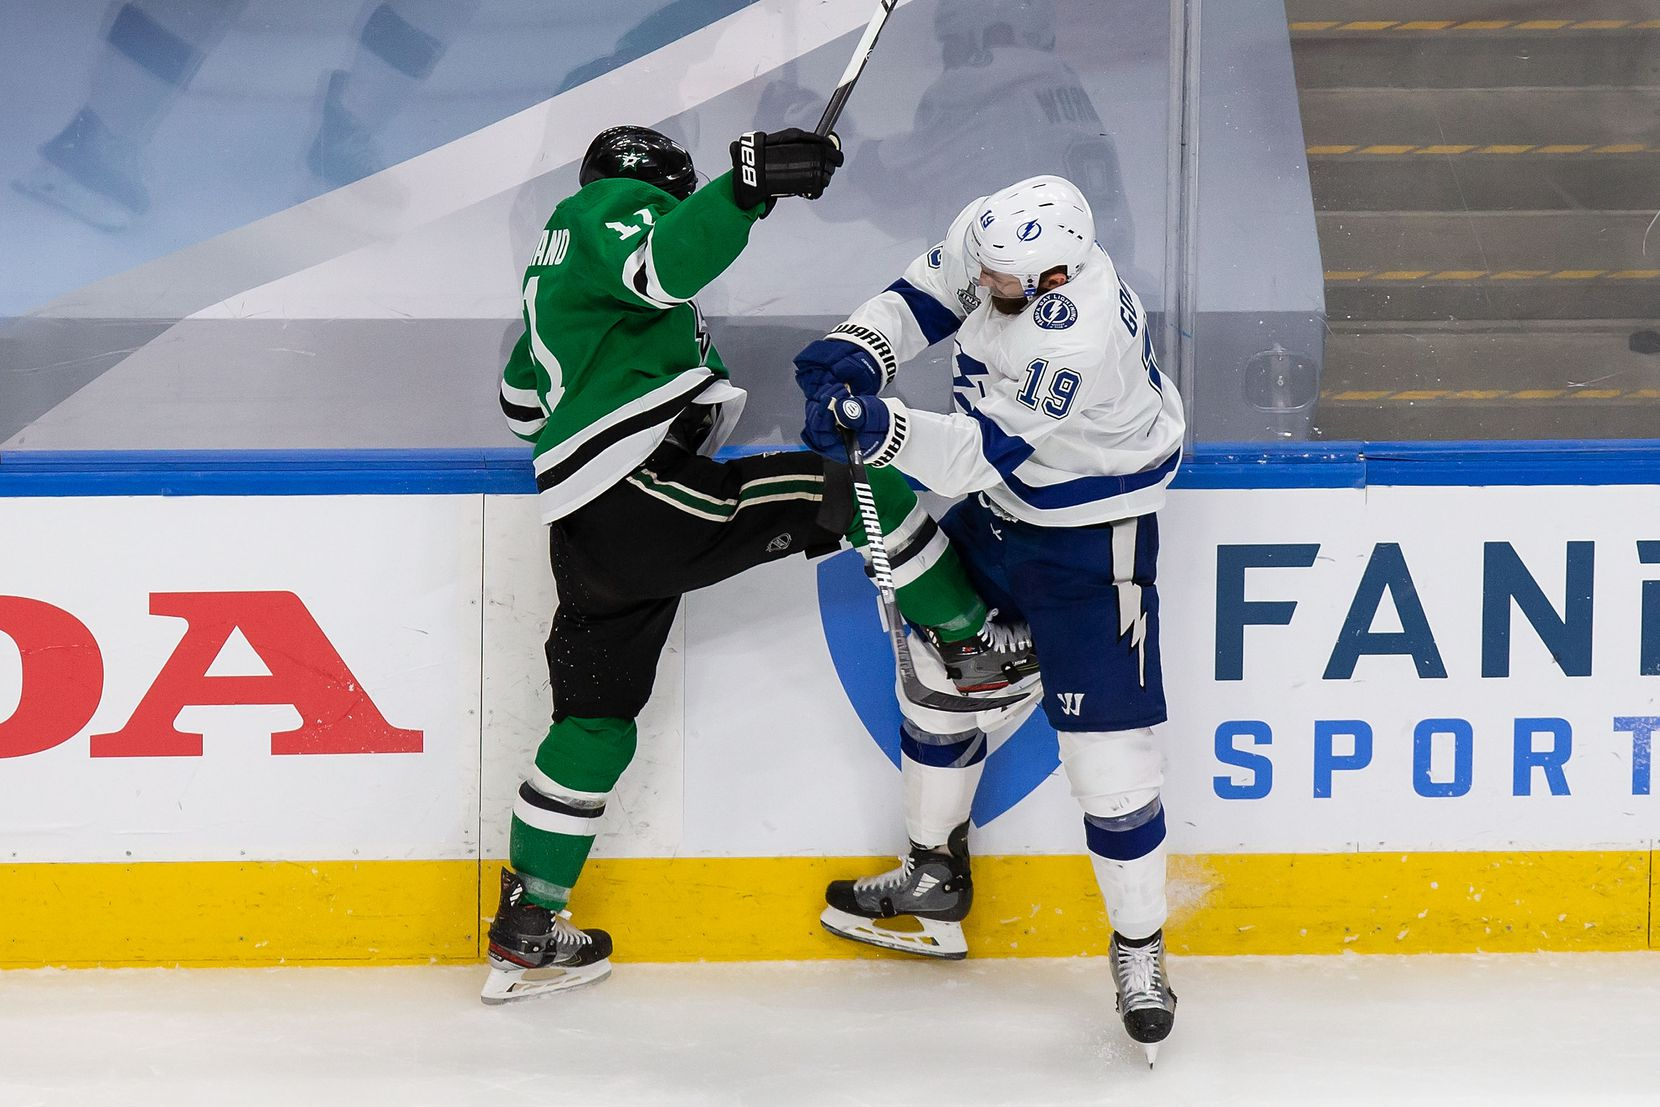 Nick Caamano (17) of the Dallas Stars gets his skate into Barclay Goodrow (19) of the Tampa Bay Lightning during Game Three of the Stanley Cup Final at Rogers Place in Edmonton, Alberta, Canada on Wednesday, September 23, 2020. (Codie McLachlan/Special Contributor)